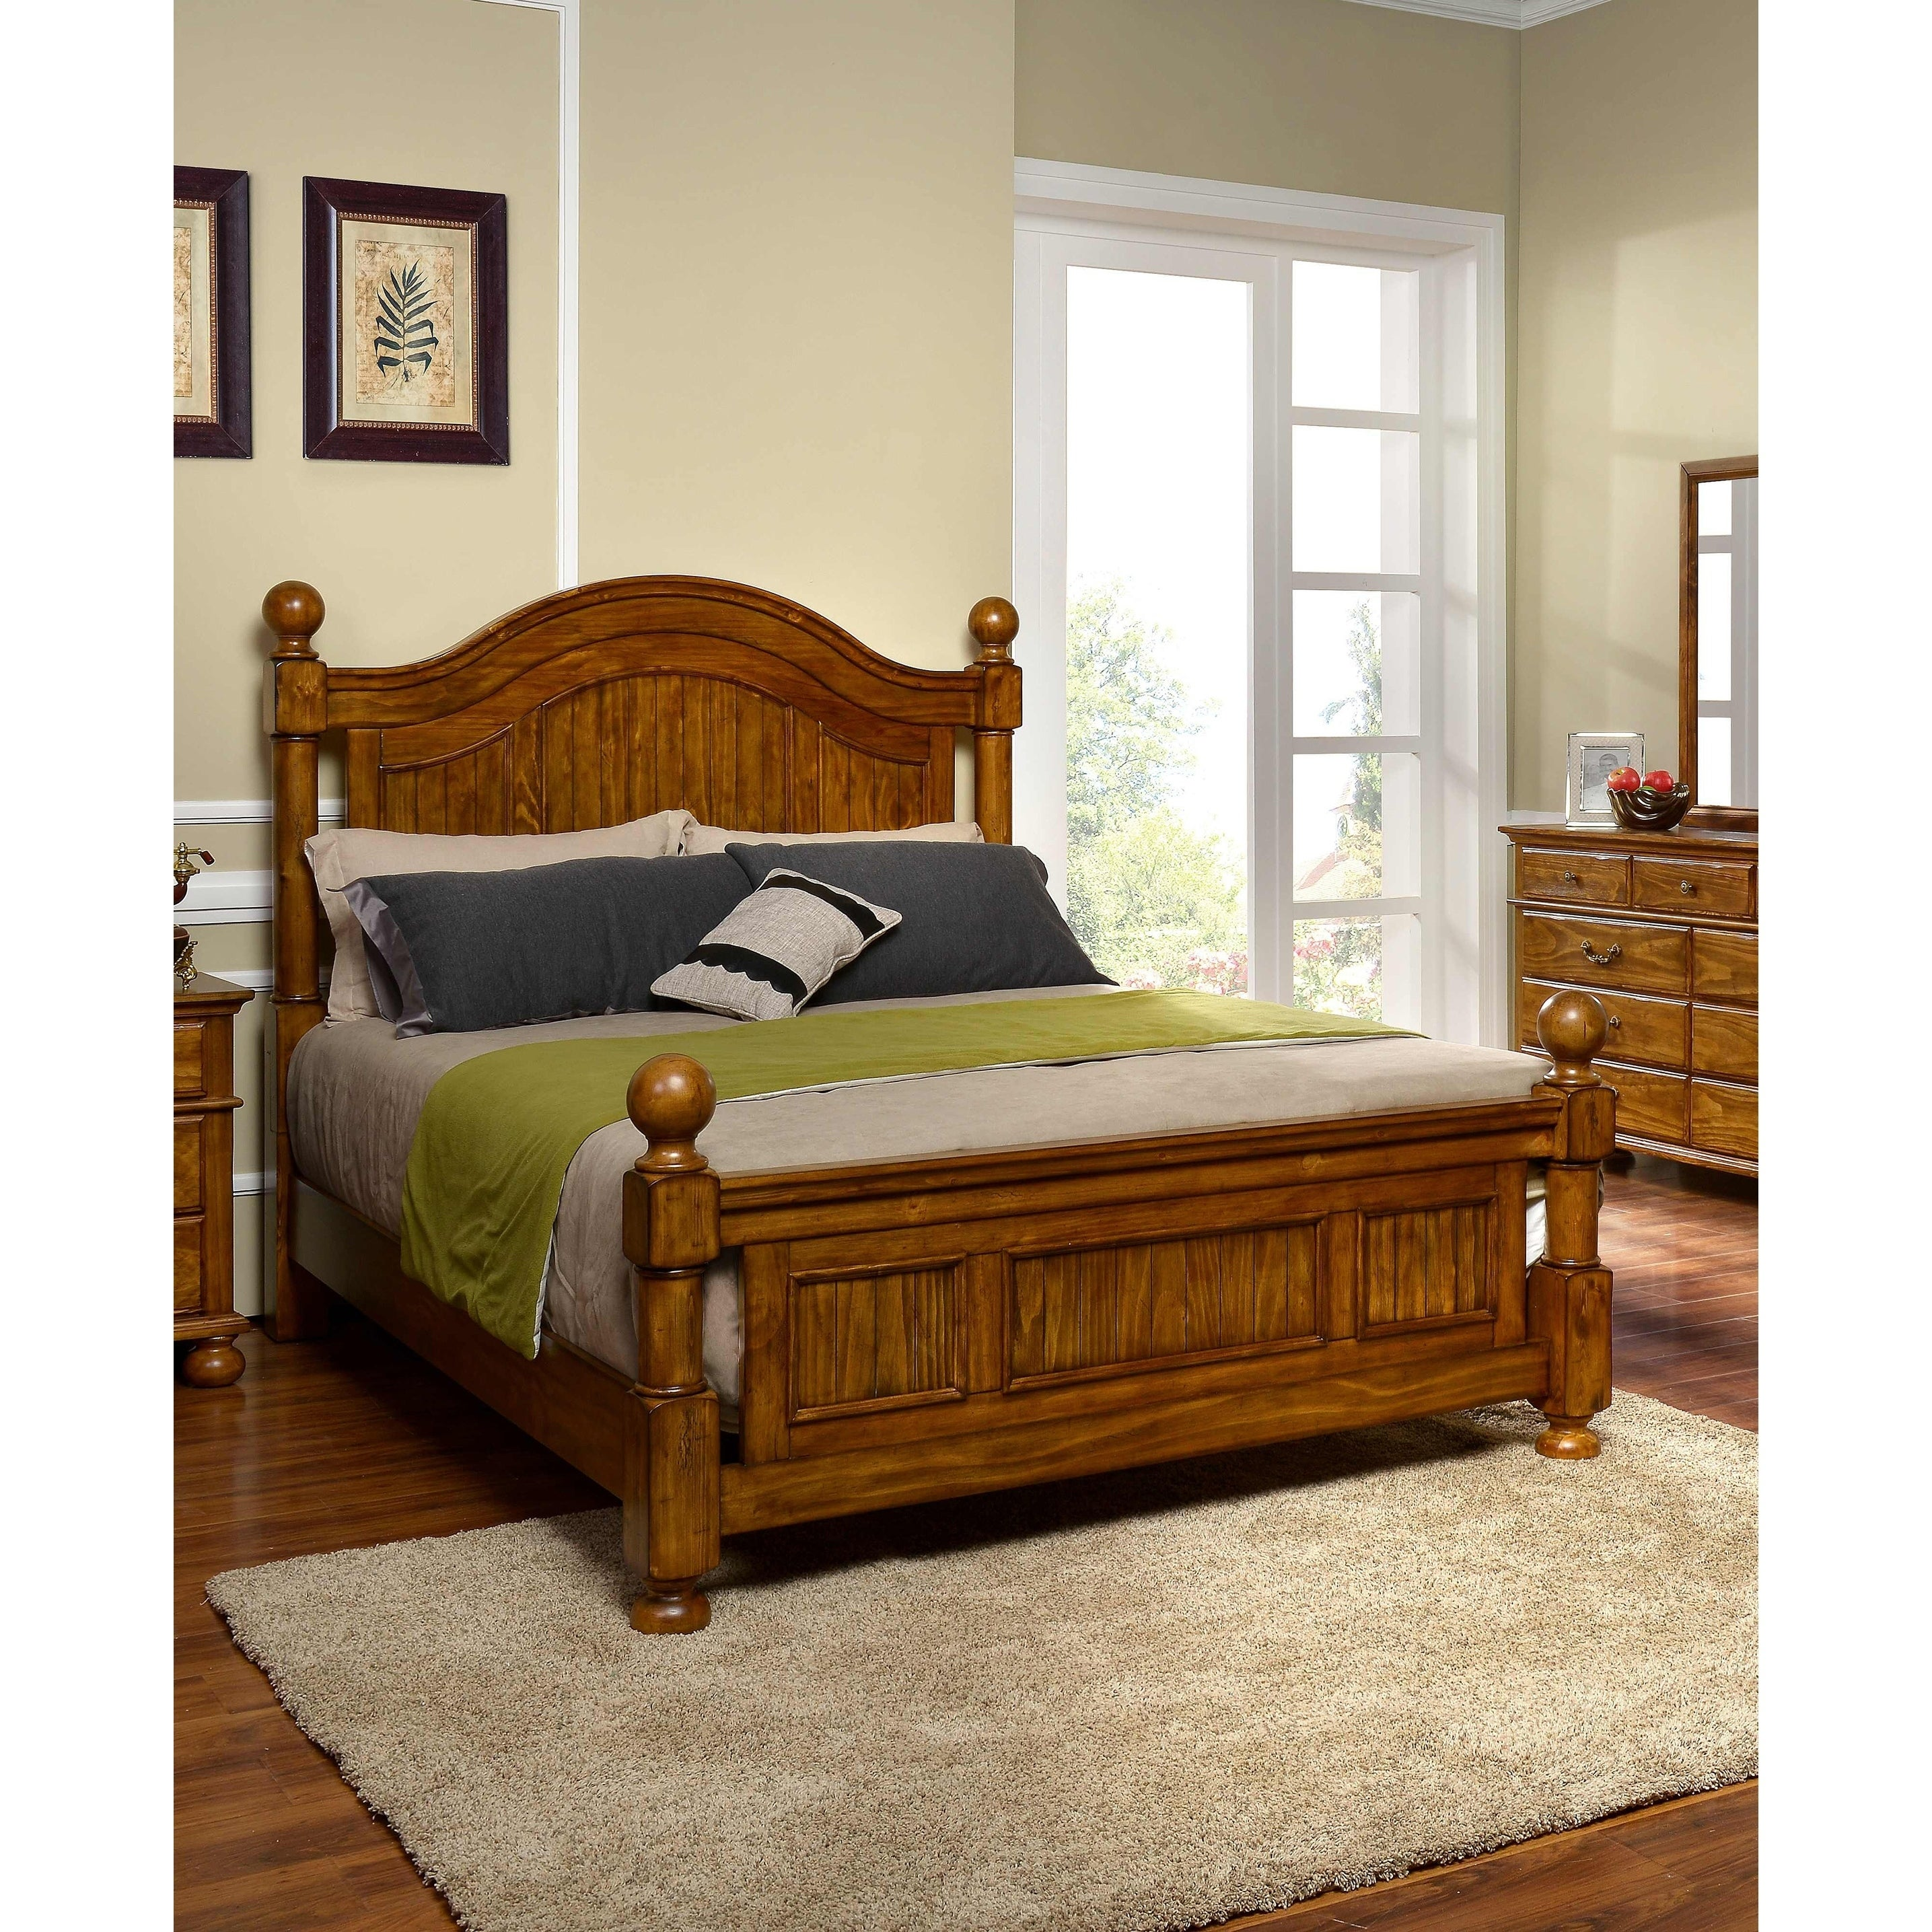 dd32f730c2 Shop Cumberland Antique Pine Rustic King Bed - Free Shipping Today -  Overstock - 20222937